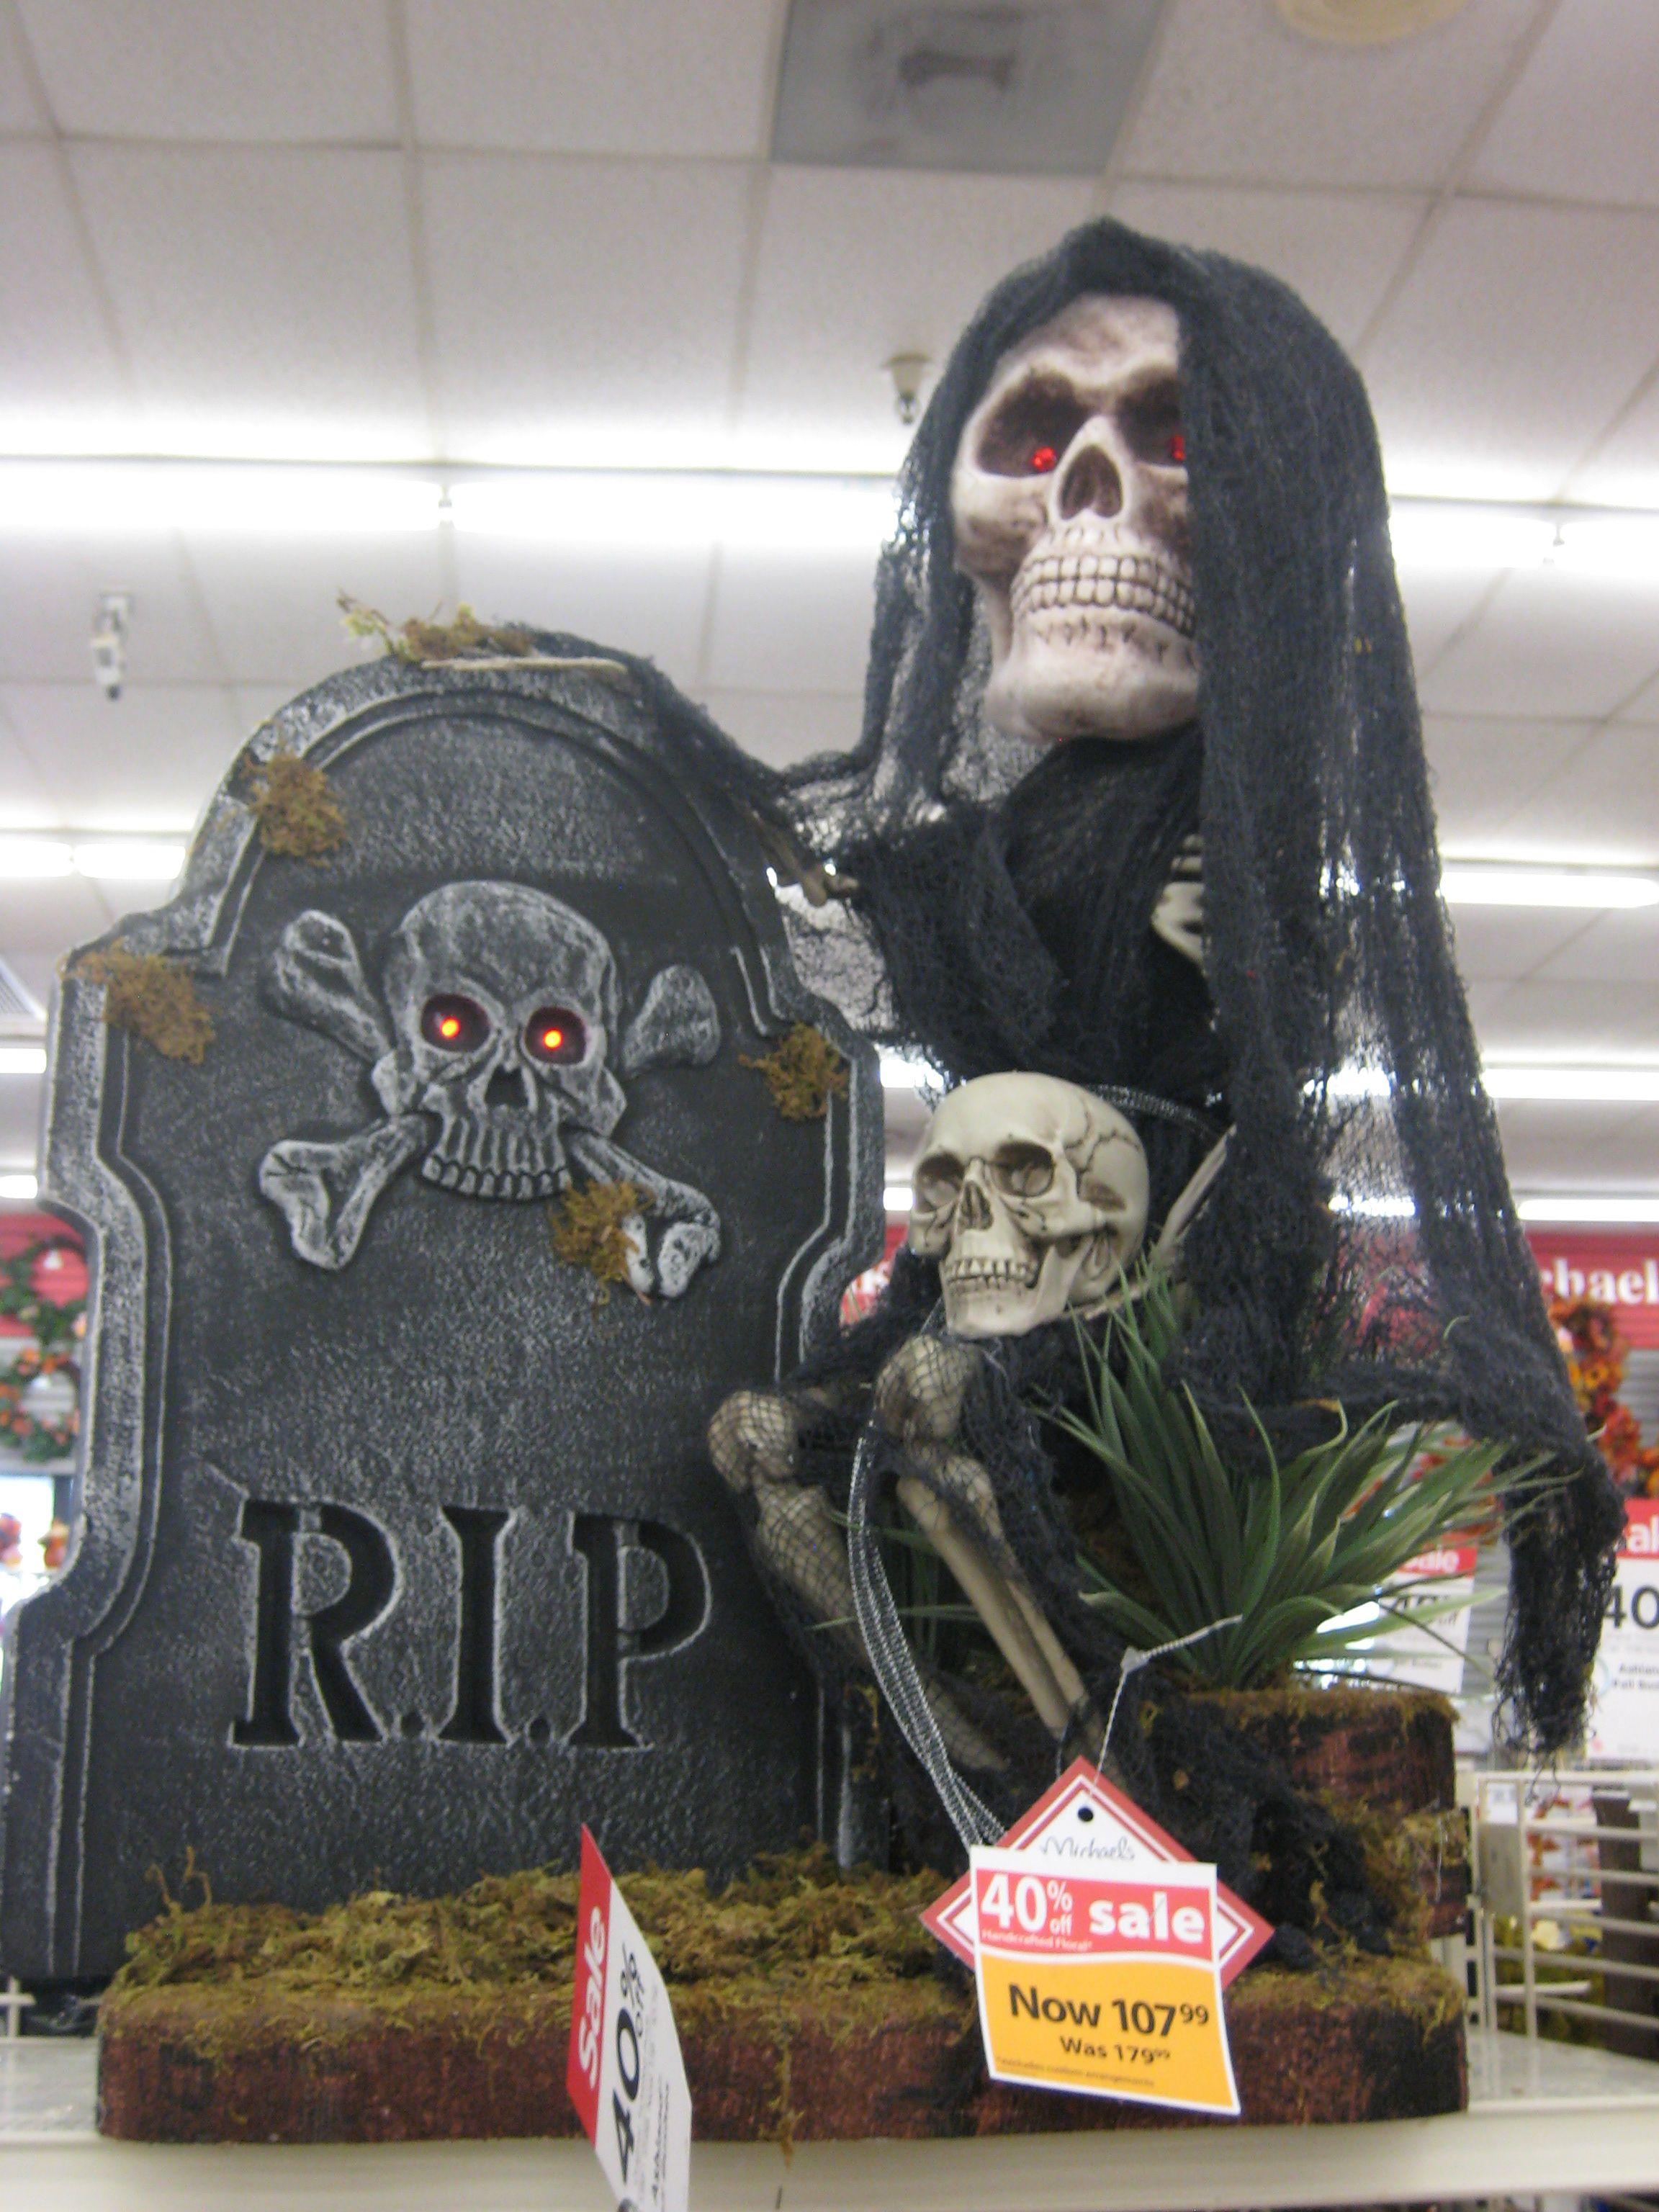 Grimm Reaper 2013-Christina Villasenor 3046 @ the Tustin Michaels - michaels halloween decorations